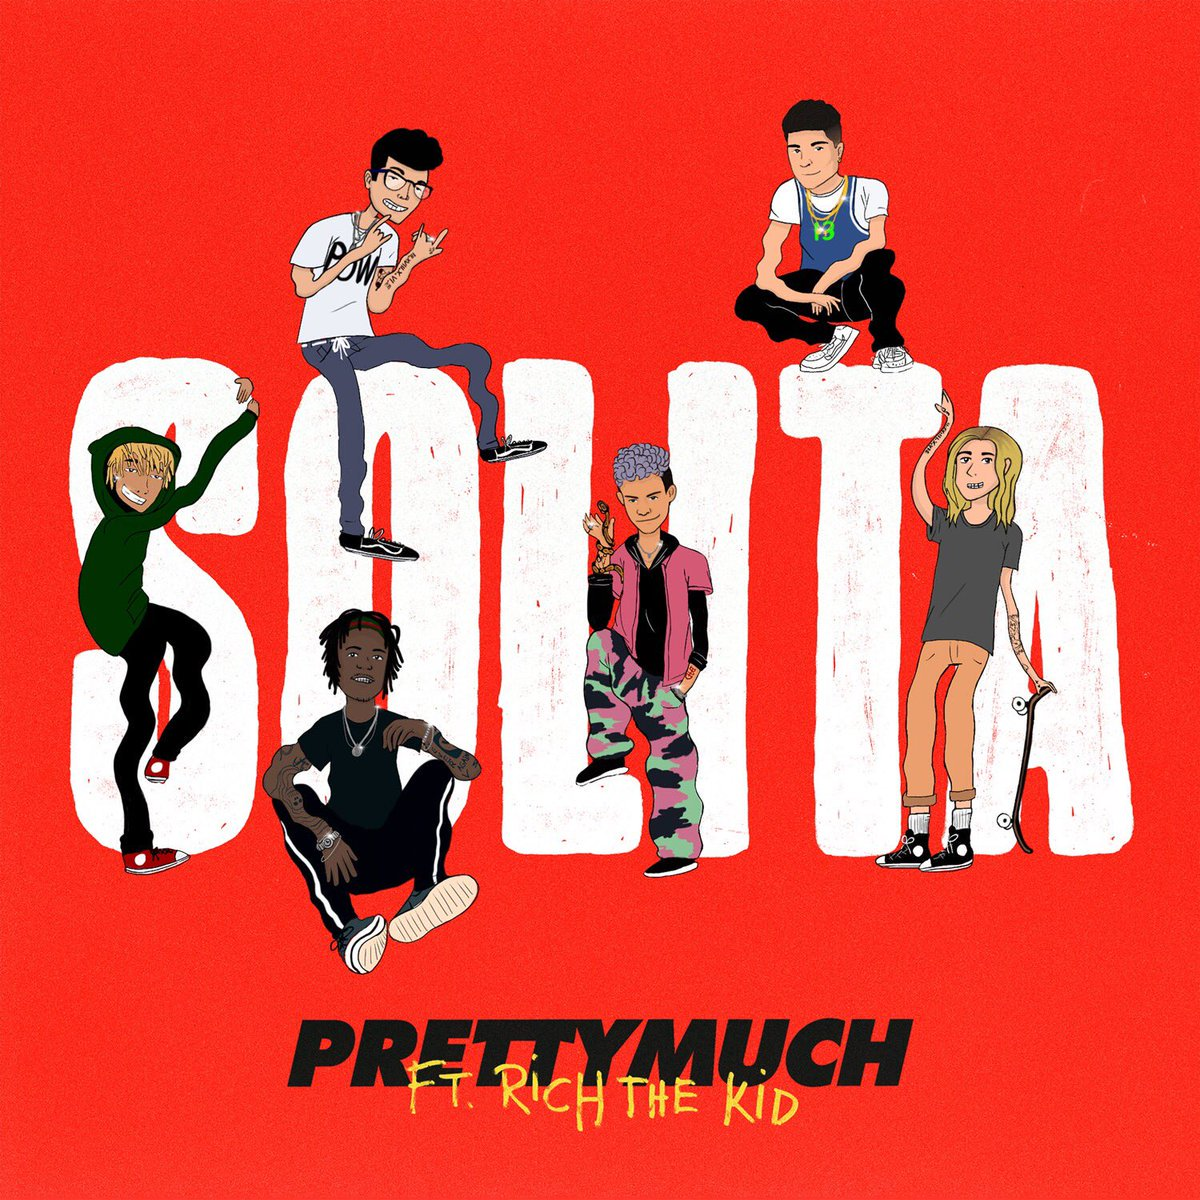 Yayyyy 🎉 New music from @PRETTYMUCH & @richthekid is coming soon!!!! #Solita